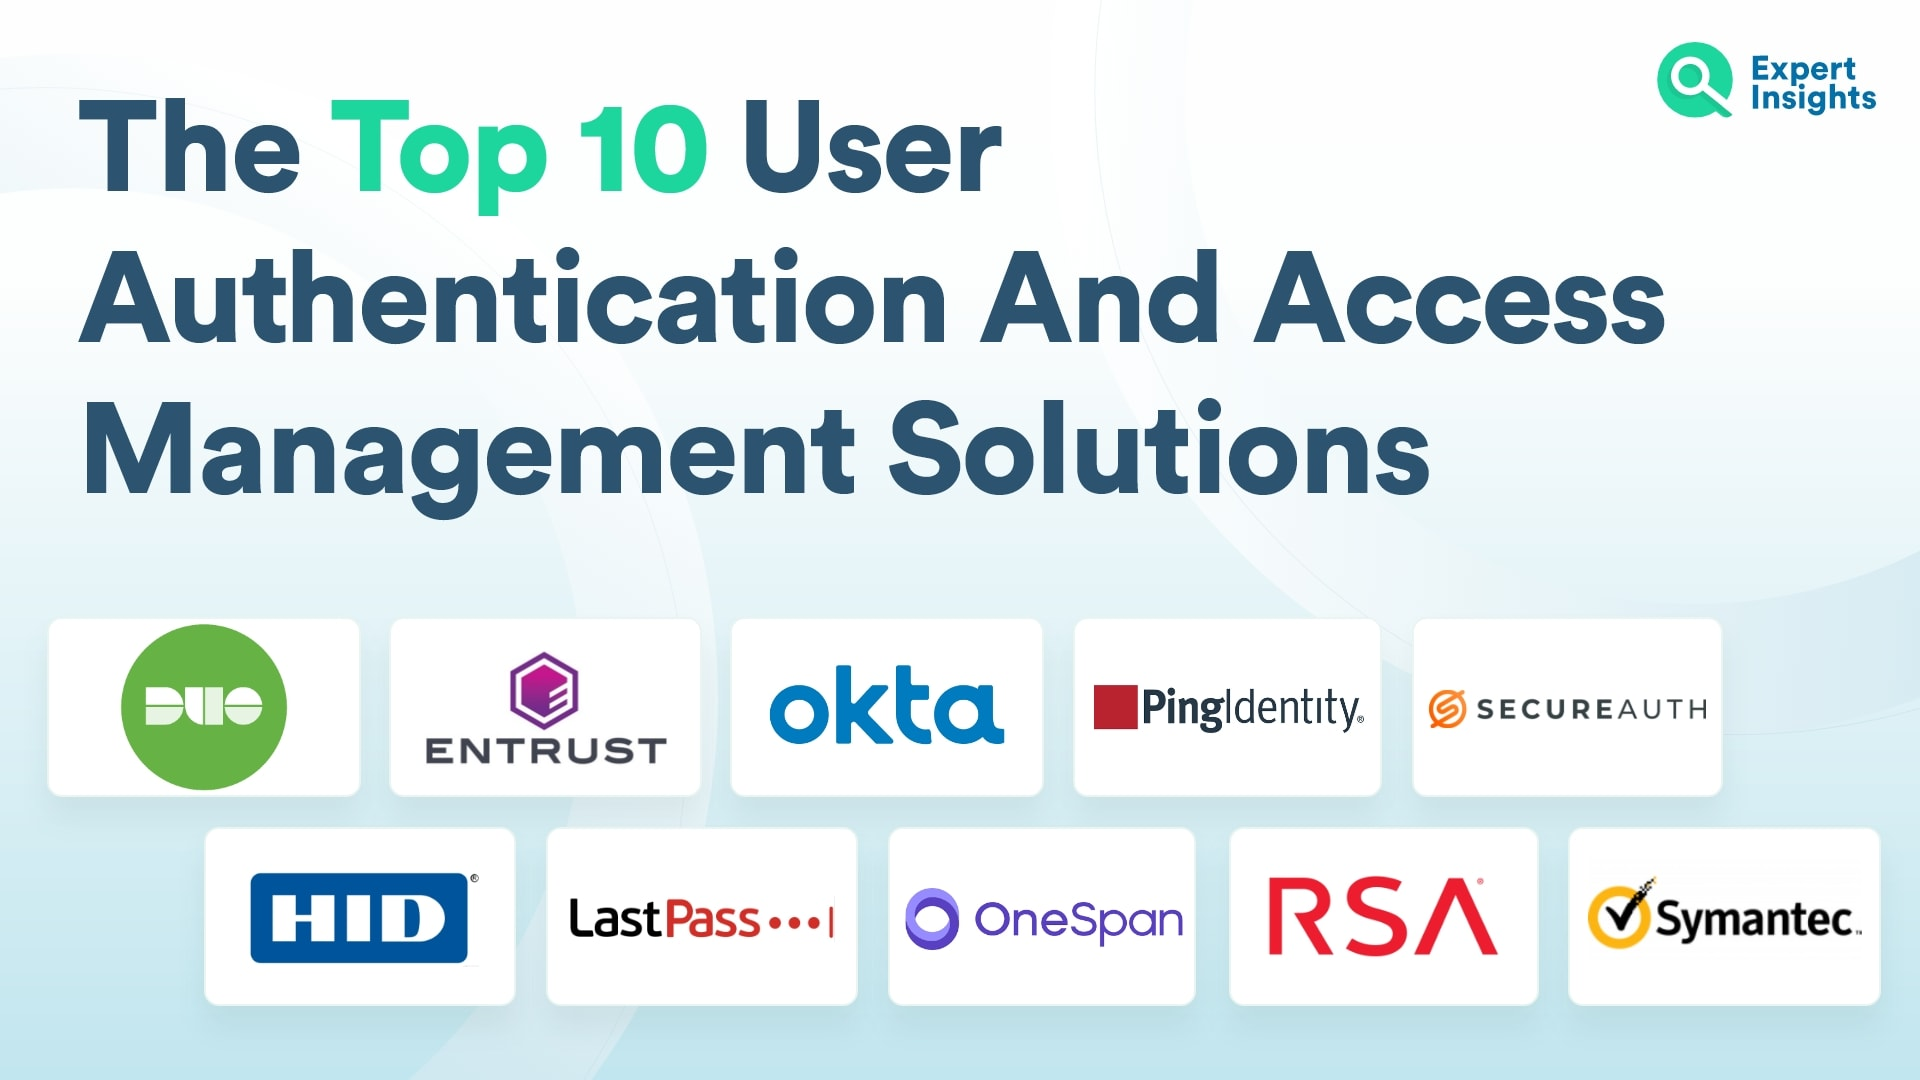 Top 10 User Authentication And Access Management Solutions - Expert Insights